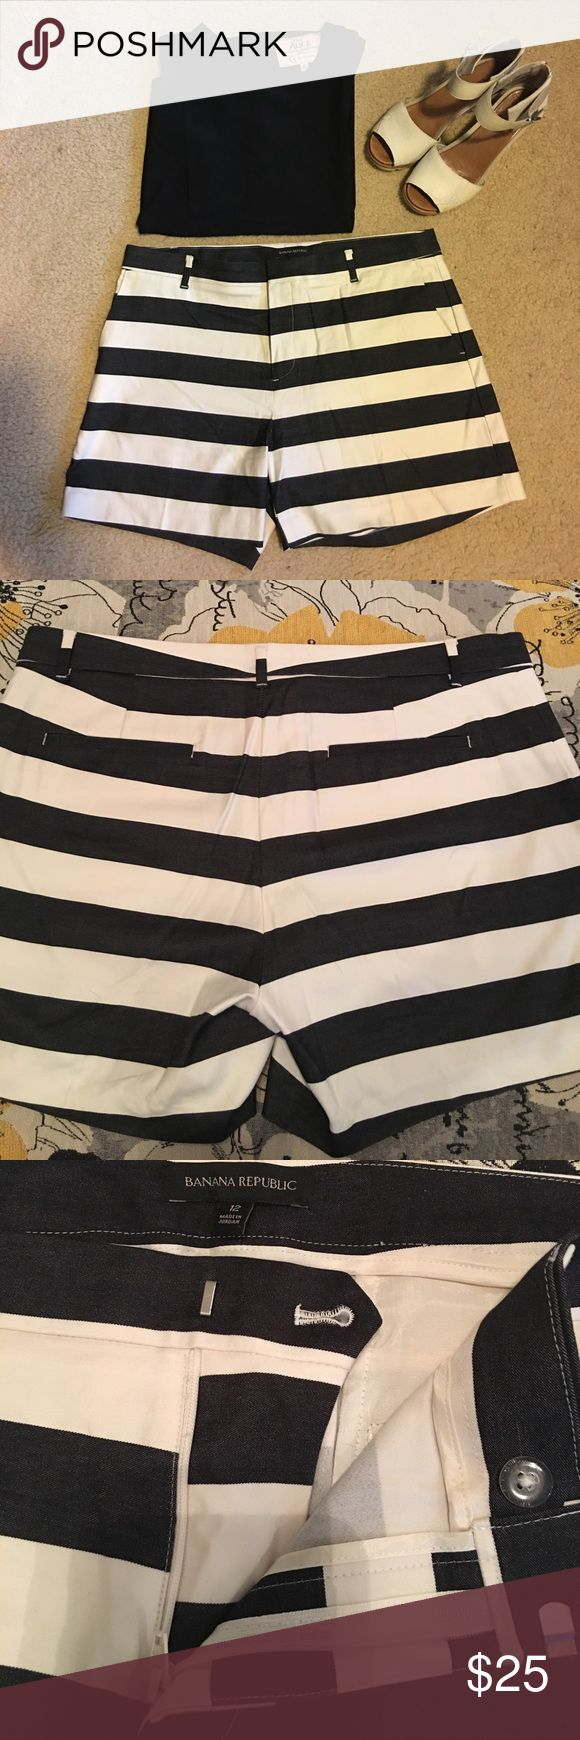 "Banana Republic Ladies Wide Stripe Shorts  Size 12 You can't go wrong with this color combination and stripes are everywhere! Black and ivory wide striped shorts. Belt loops, side pockets back slash pockets that are still sewed down. Waist approx 18"" and 5"" inseam. 97% cotton, 3% spandex for a comfy fit. Only worn once and in excellent condition. Banana Republic Shorts"